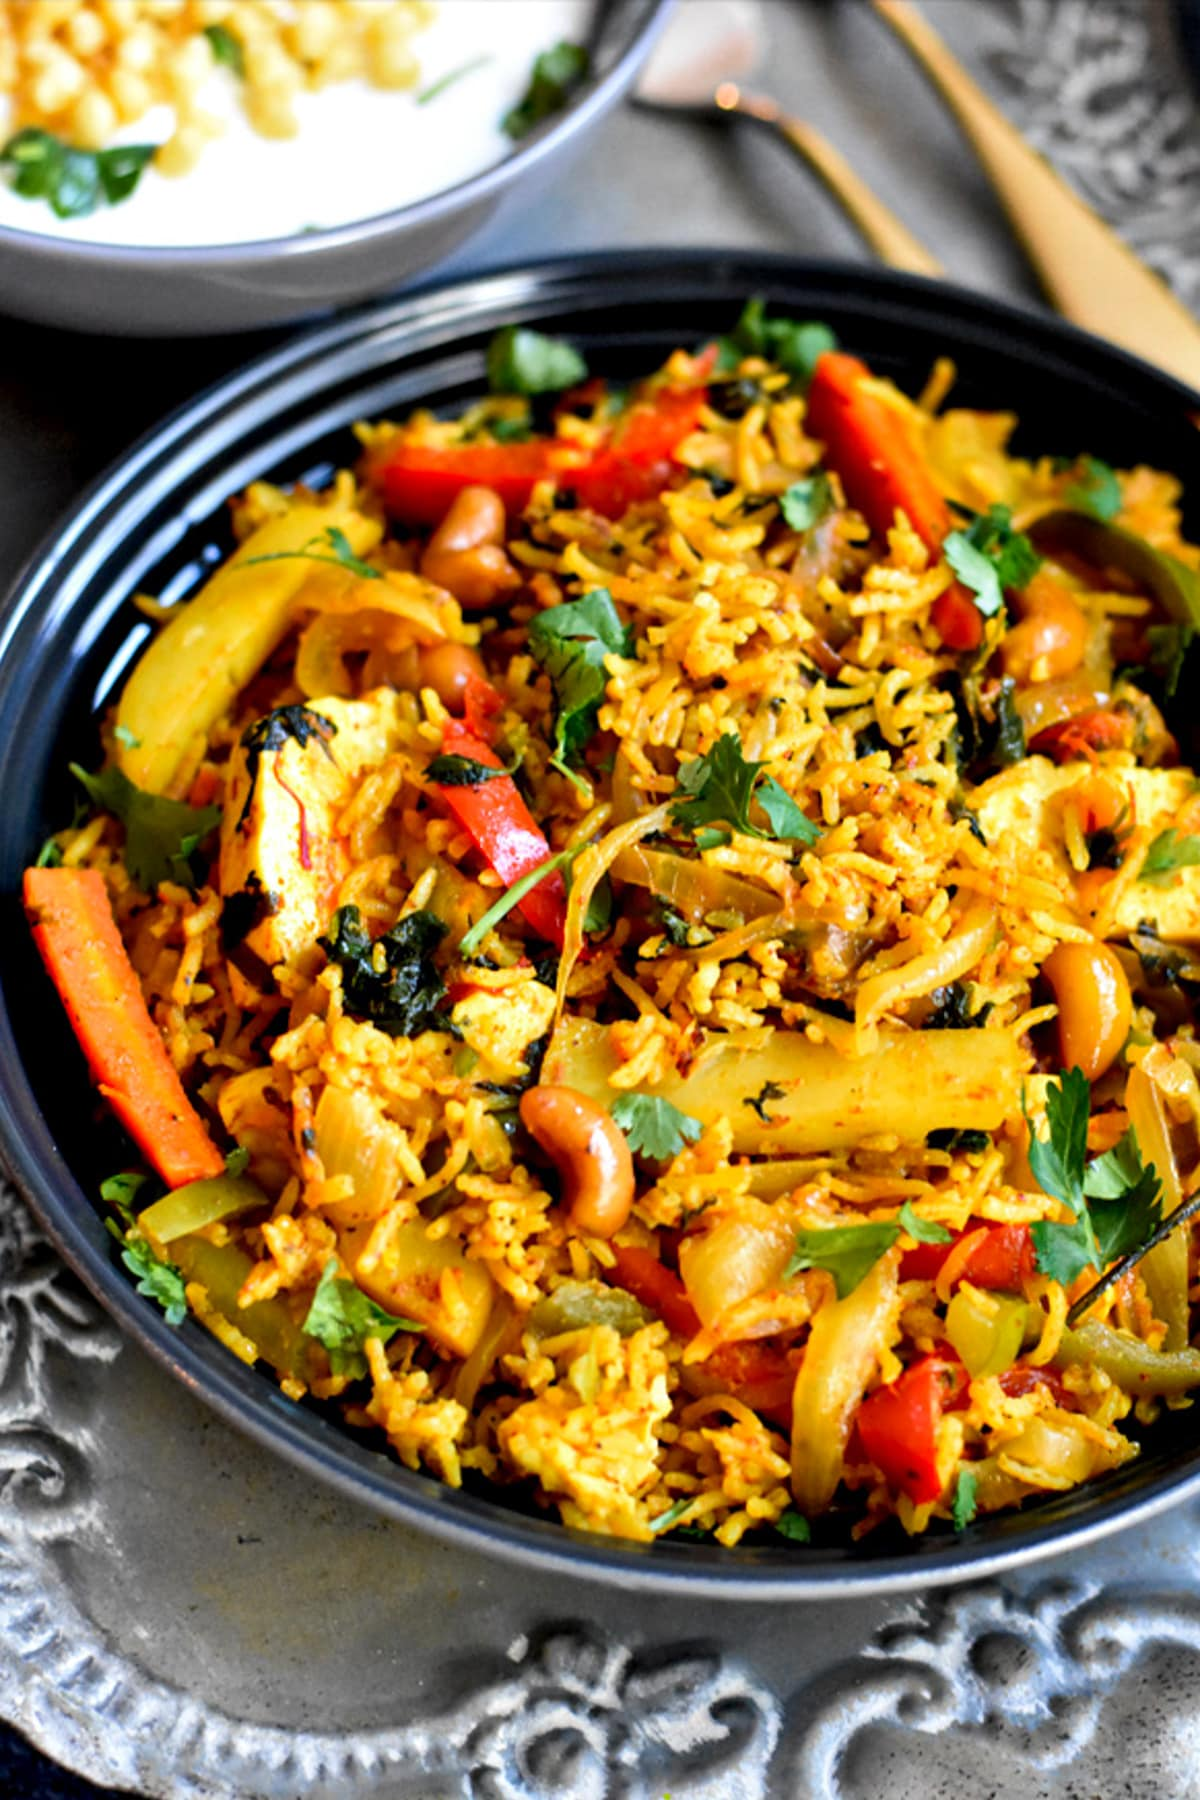 Rice cooked with vegetables and served with yogurt